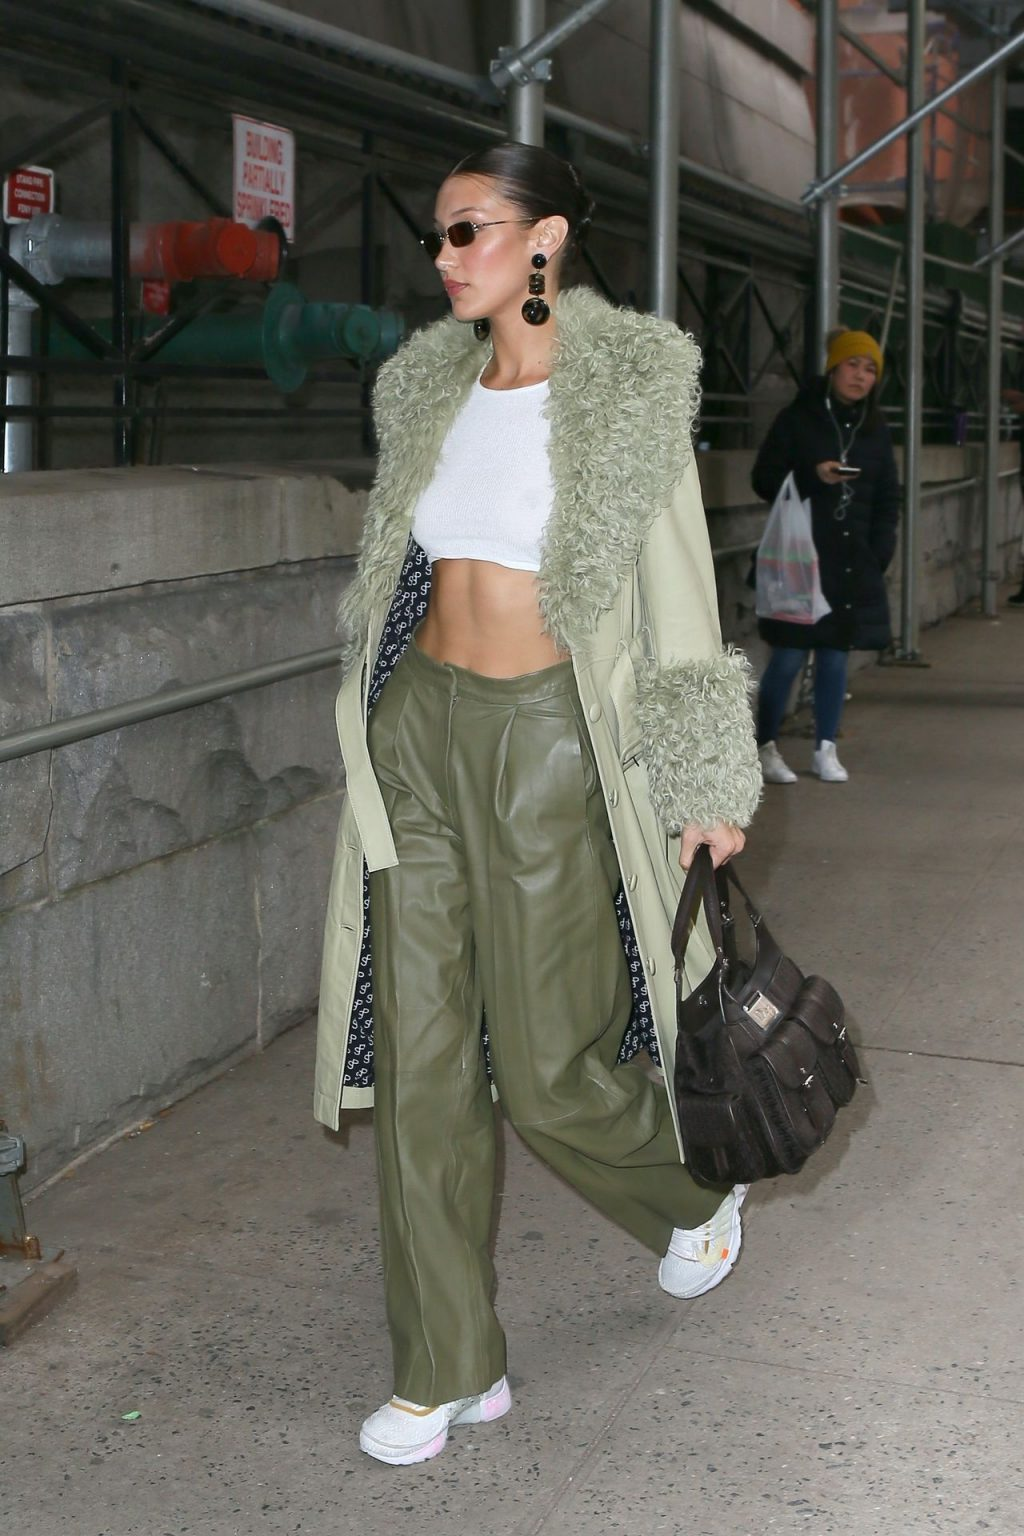 Bella Hadid See through The Fappening Blog 18 1024x1536 - Braless Bella Hadid Arrives at the Park Avenue Armory for the Marc Jacobs Fashion Show (59 Photos)